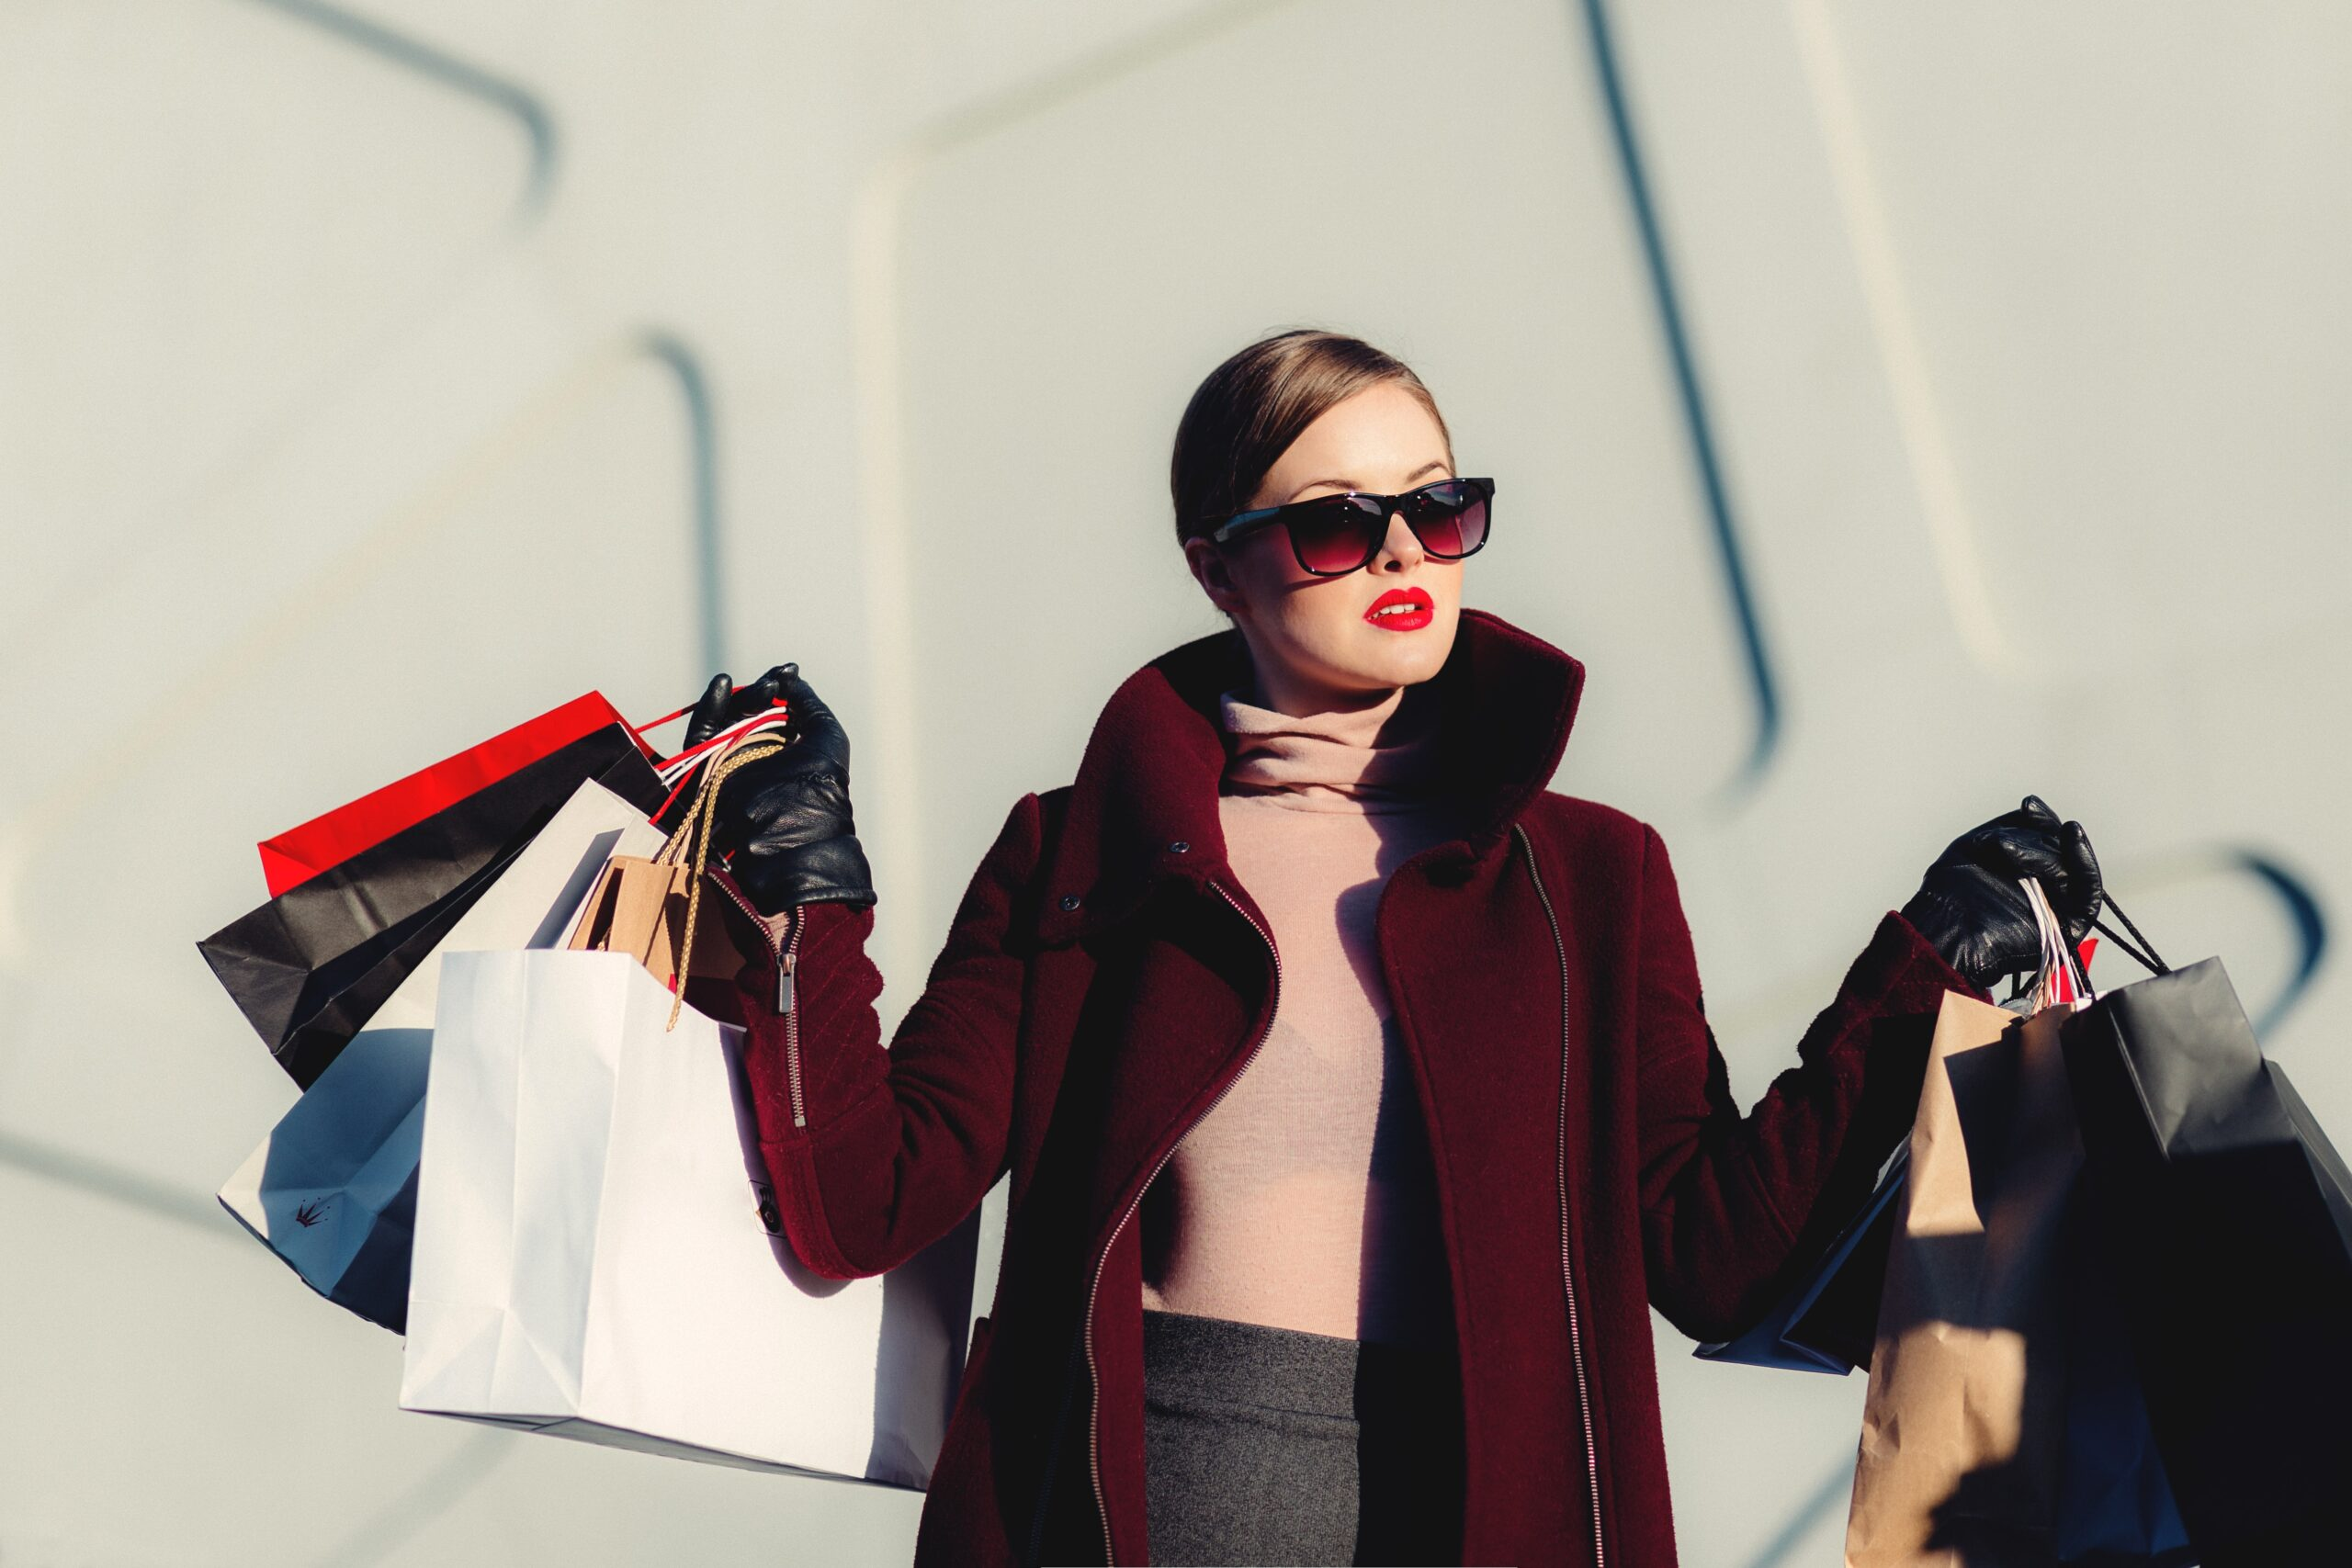 Luxe retail post covid: sustainability and the six-feet distance model